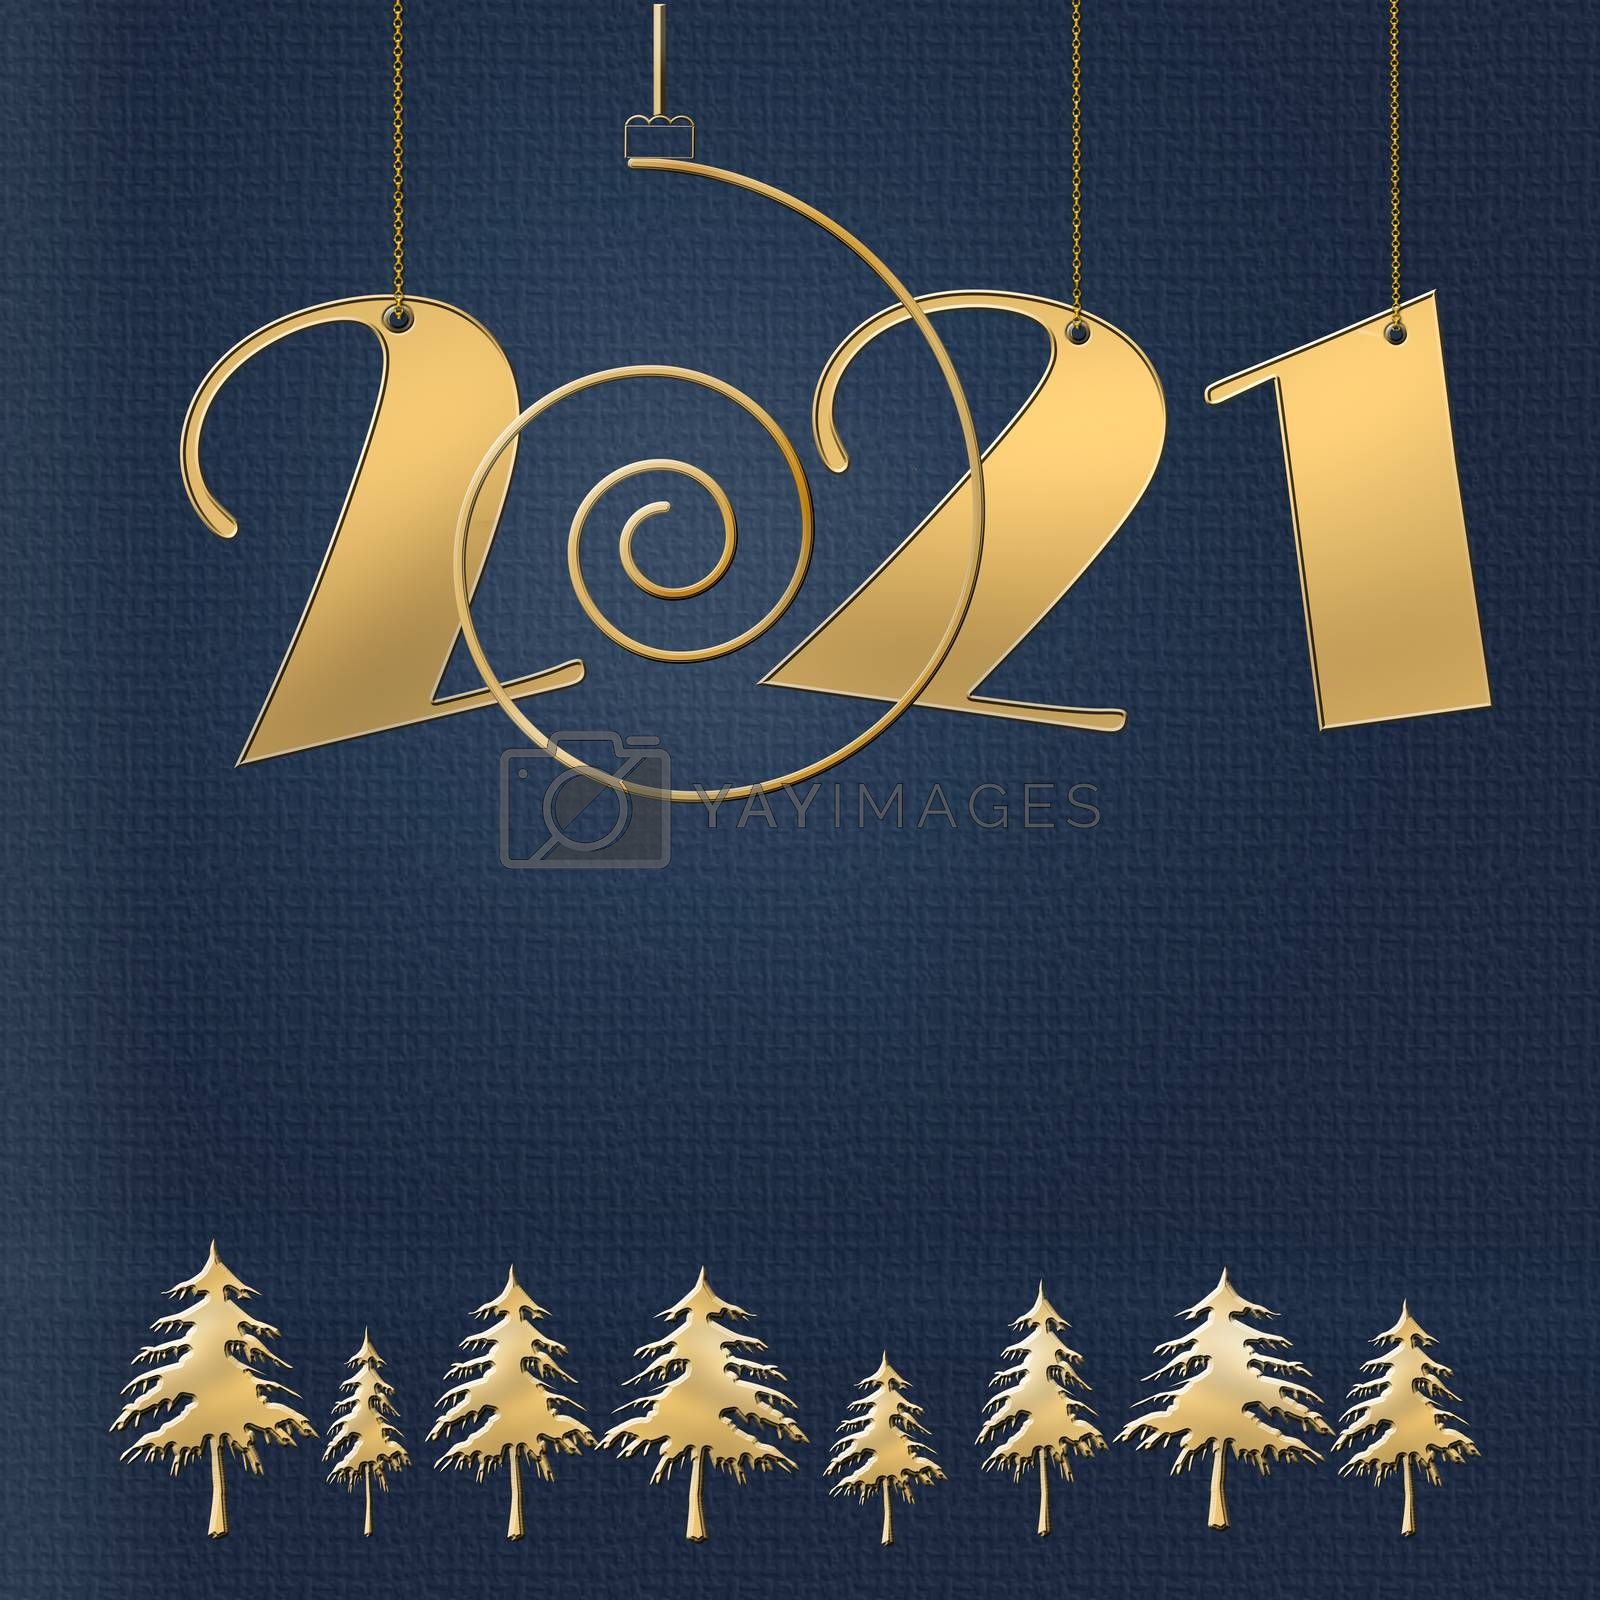 Luxury Happy New 2021 Year design with hanging 2021 digits numbers on chain, gold spiral and christmas trees on blue background. Winter holidays graphic, web design, business card, calendar cover. Copy space. 3D illustration